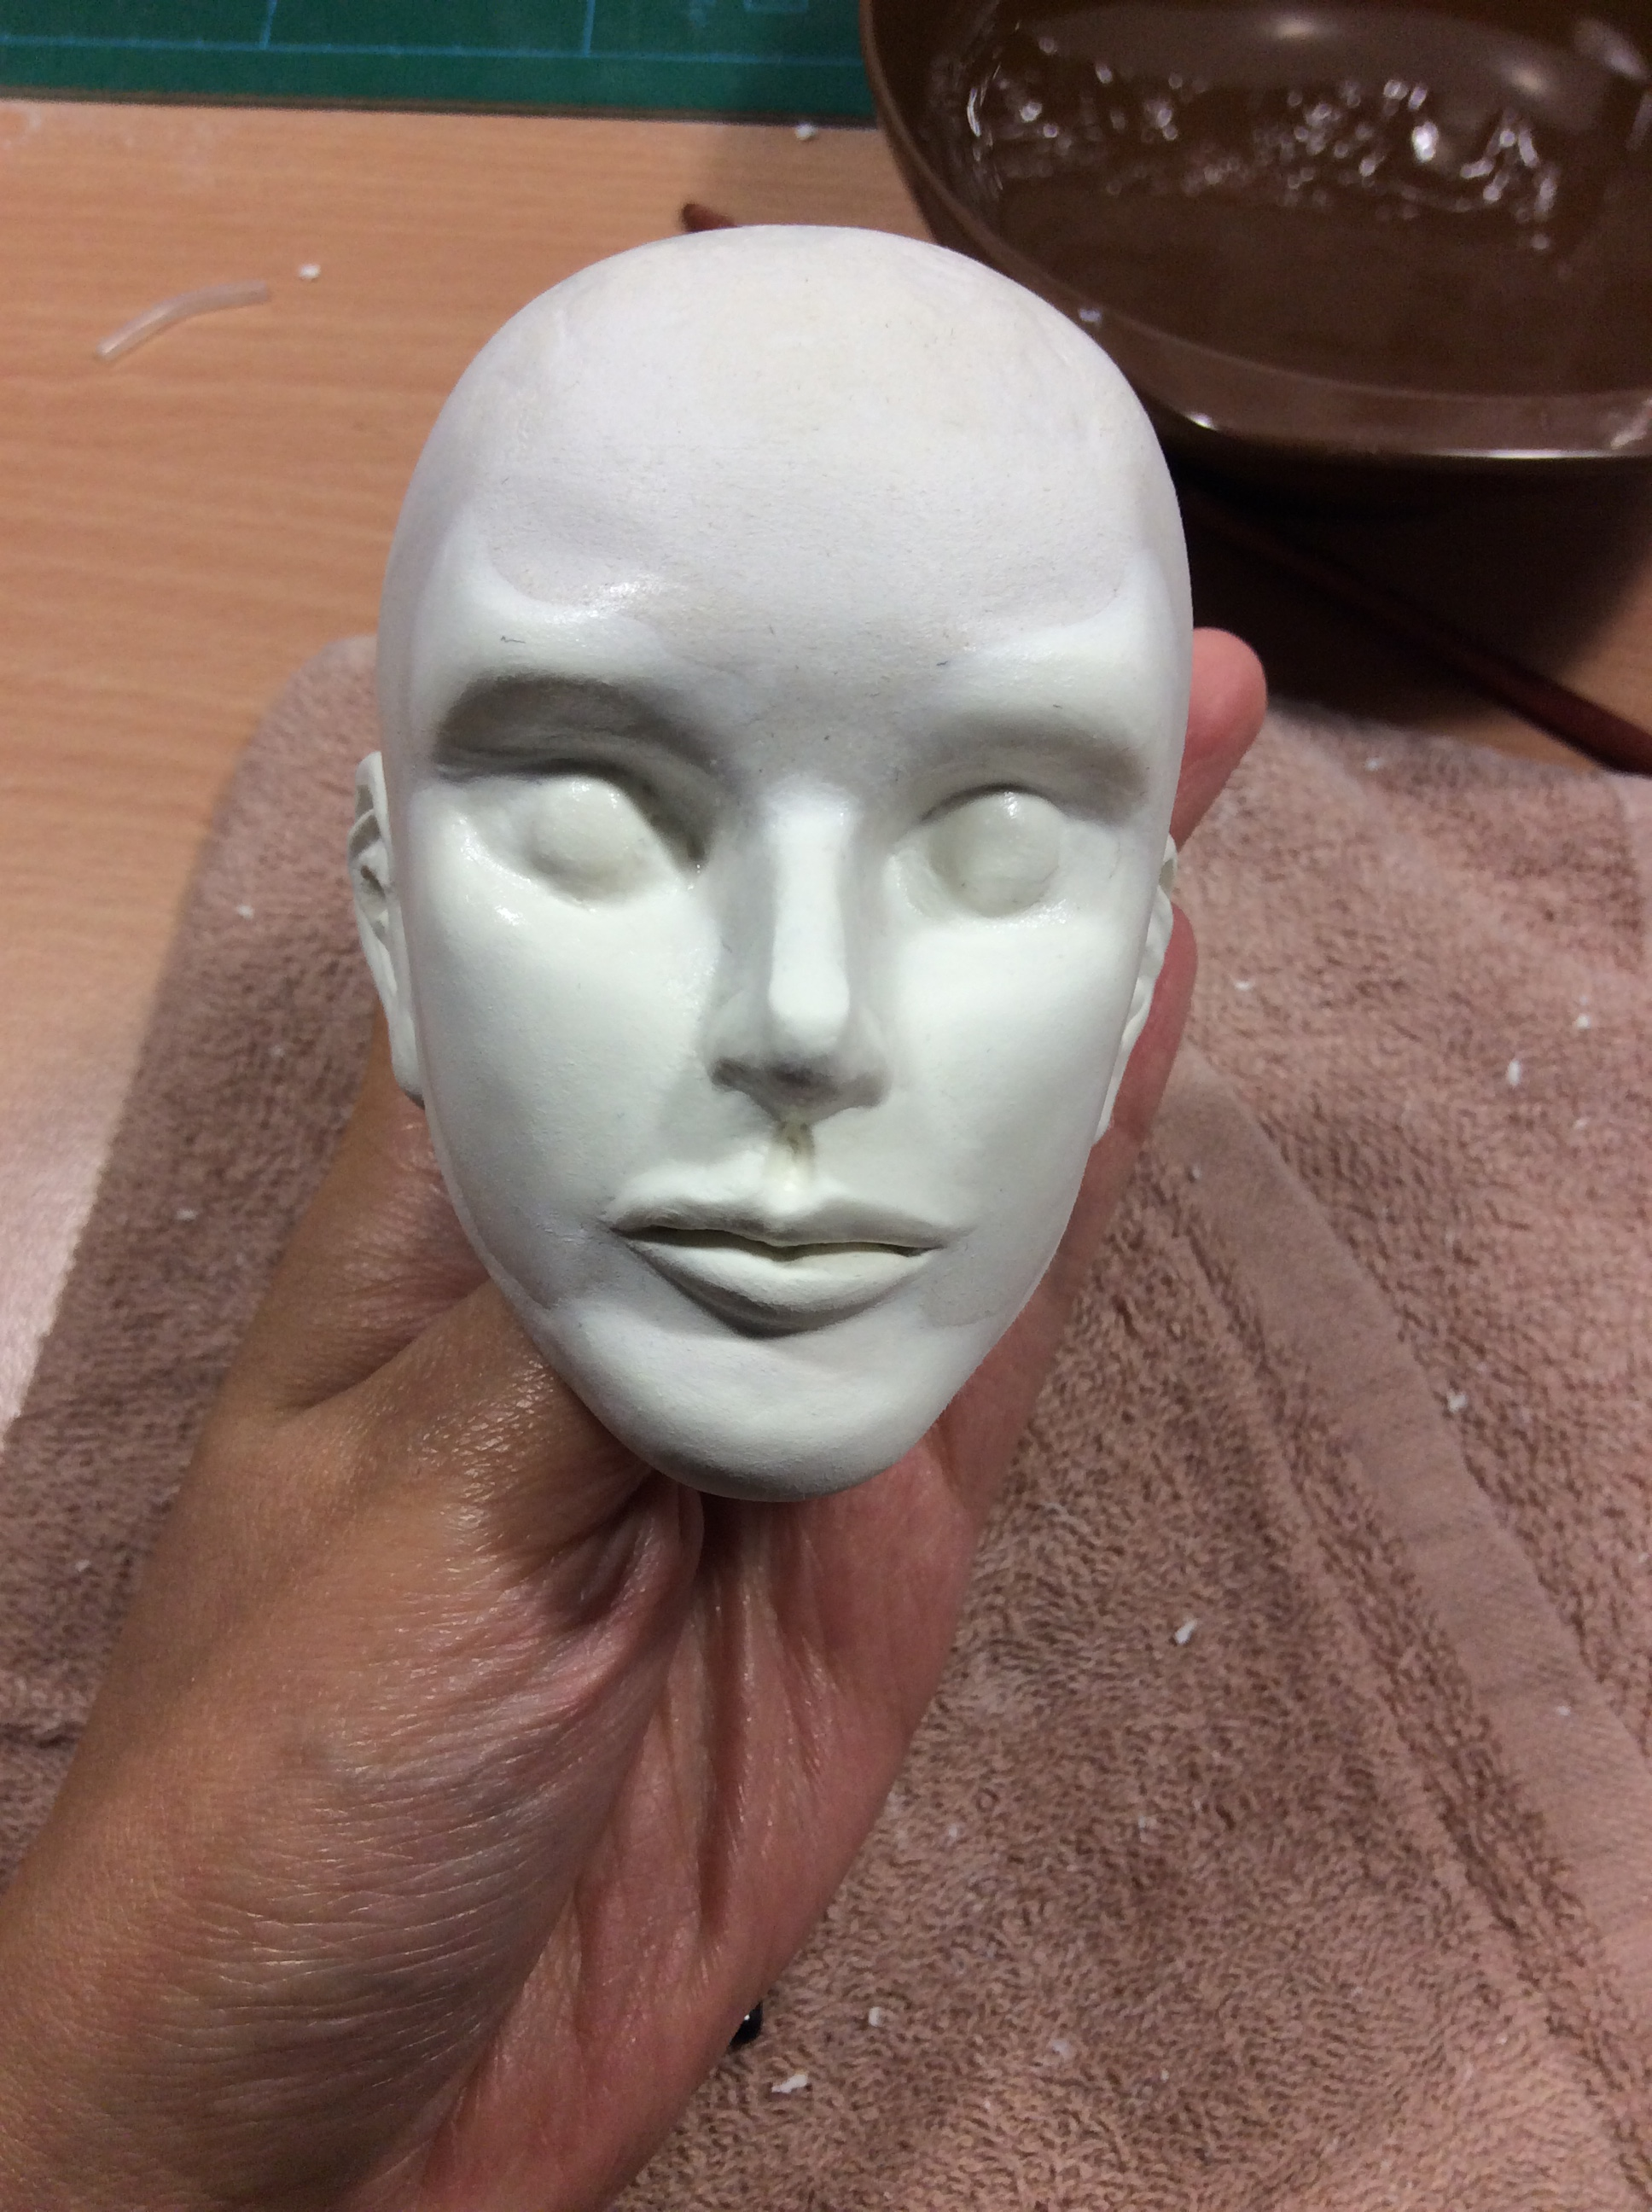 jemse---my-first-doll-head-making-progress-diary-part-3_31602573383_o